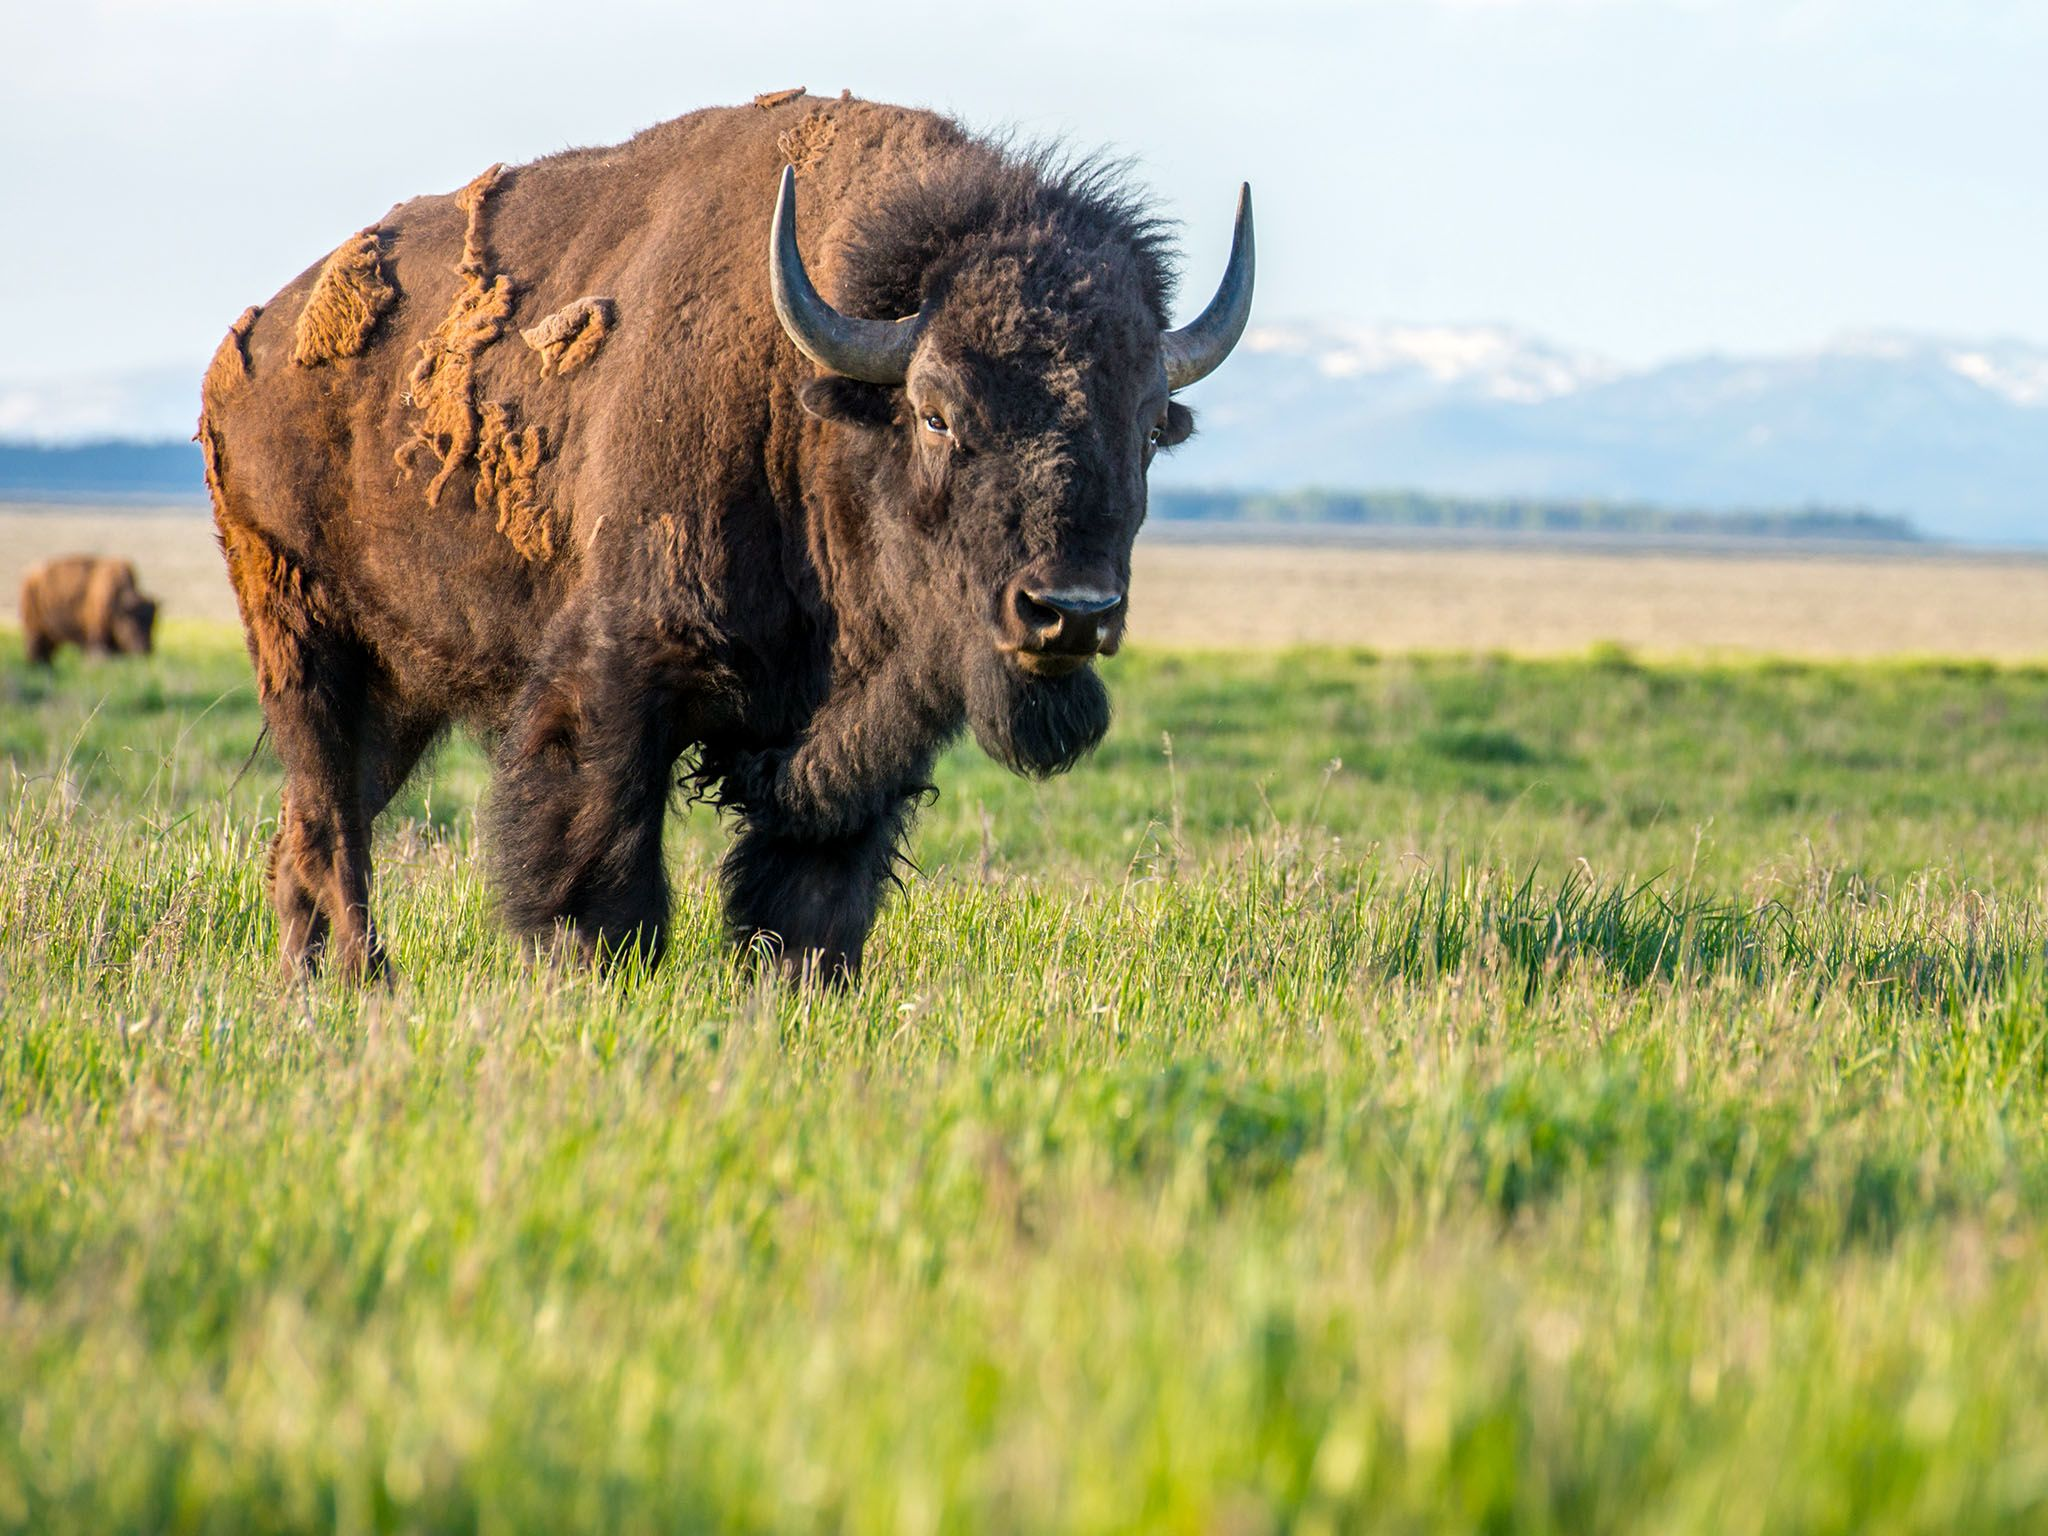 Bison near the Tetons. This image is from Wild Yellowstone. [Photo of the day - November 2015]